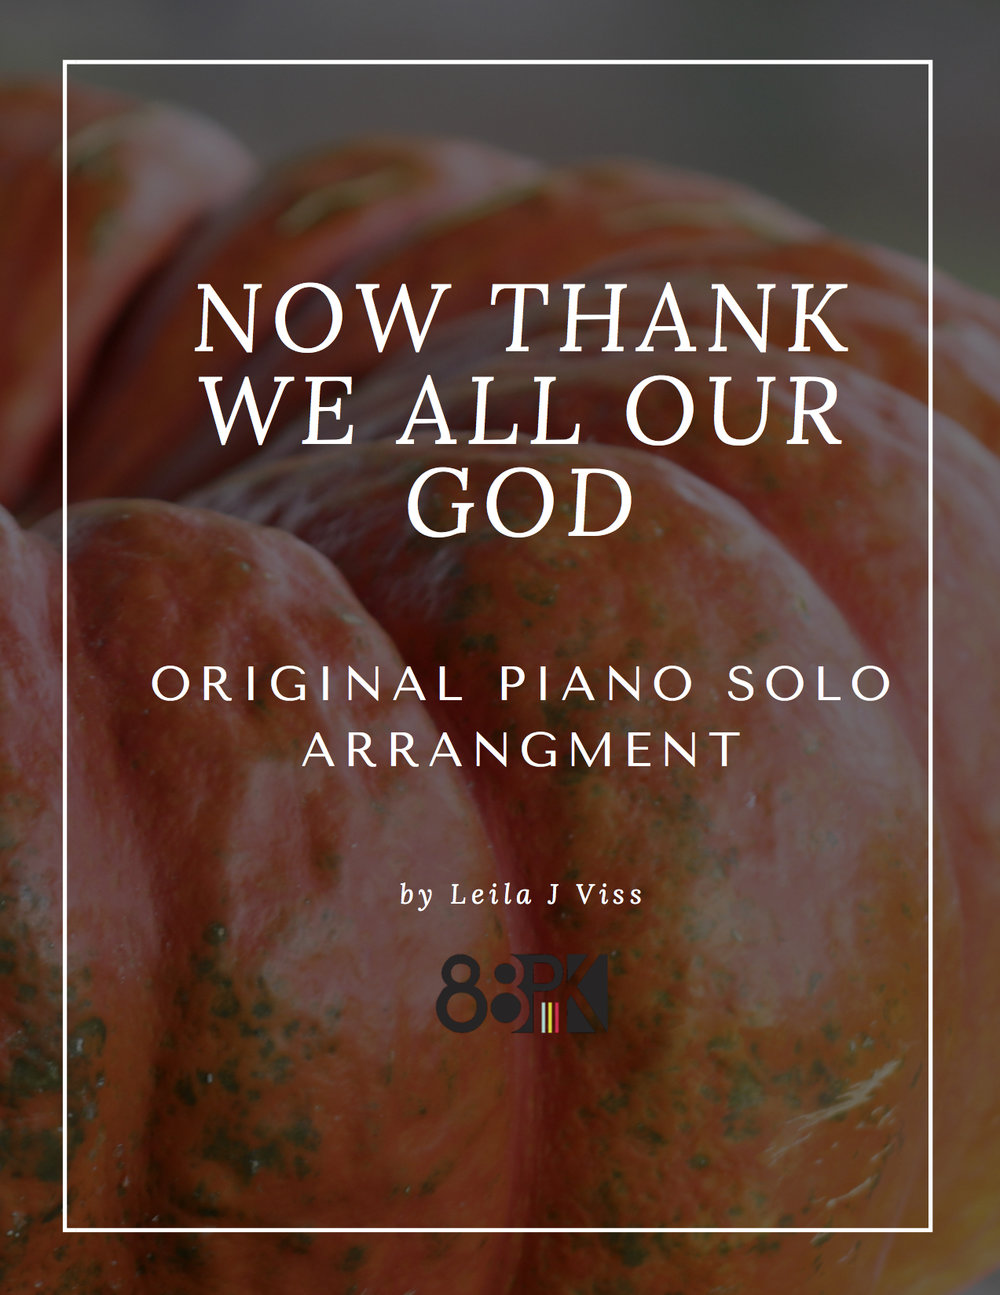 Now-Thank-We-All-Our-God.jpg